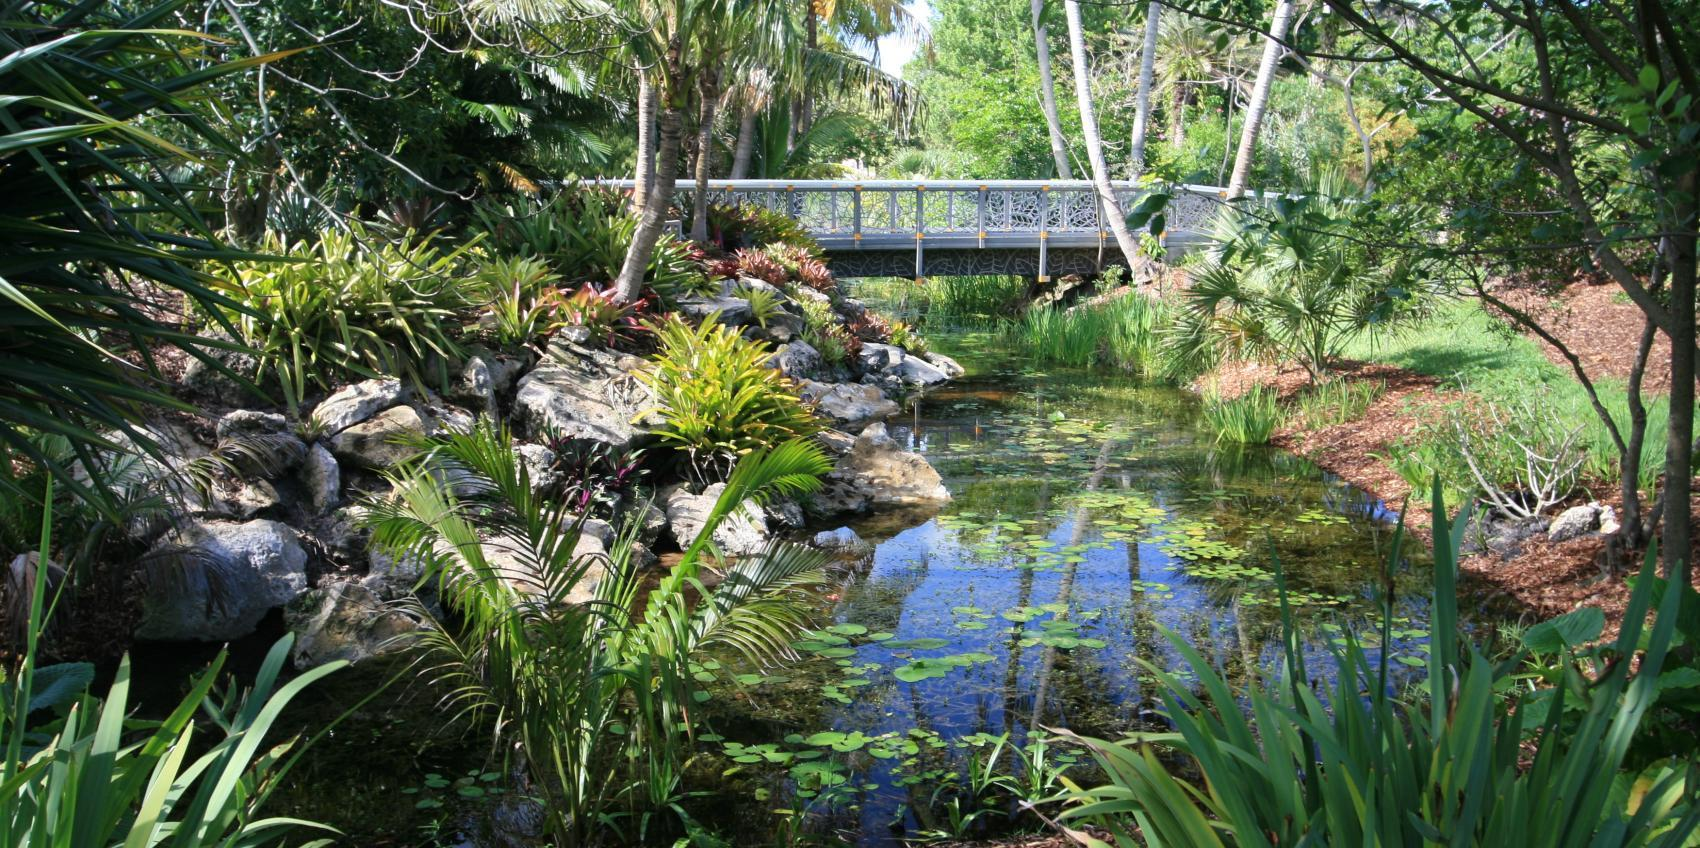 Mounts Botanical Garden Is Palm Beach County S Oldest And Largest Its 14 Acres Of Gardens Contain More Than 2 000 Species Tropical